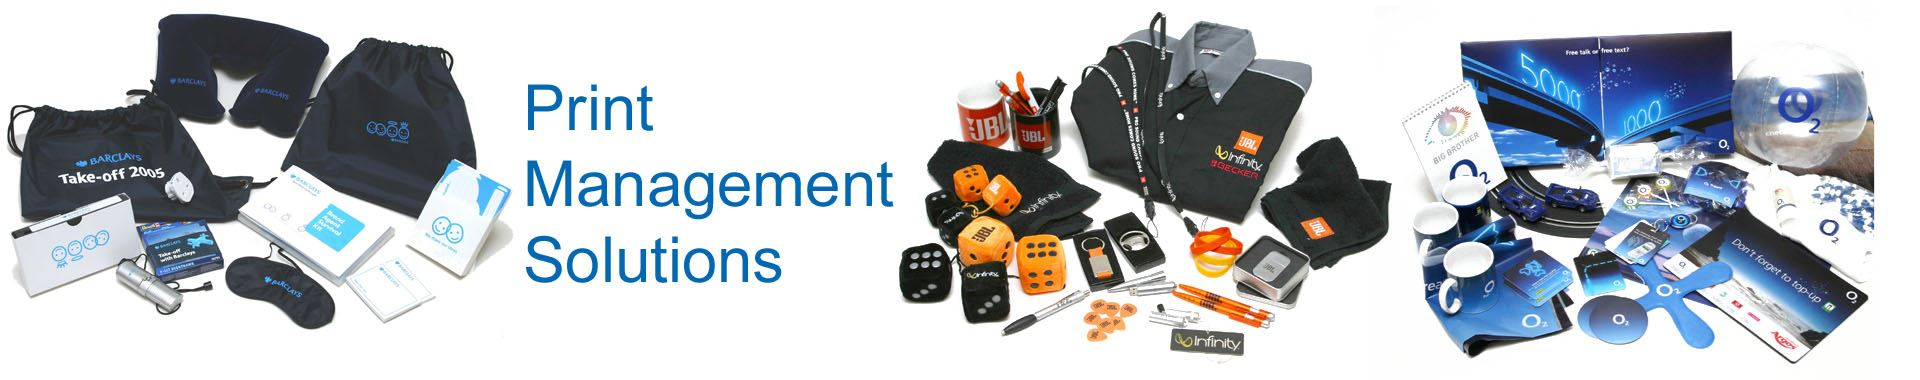 Print Management - Globally Sourced Promotional Products